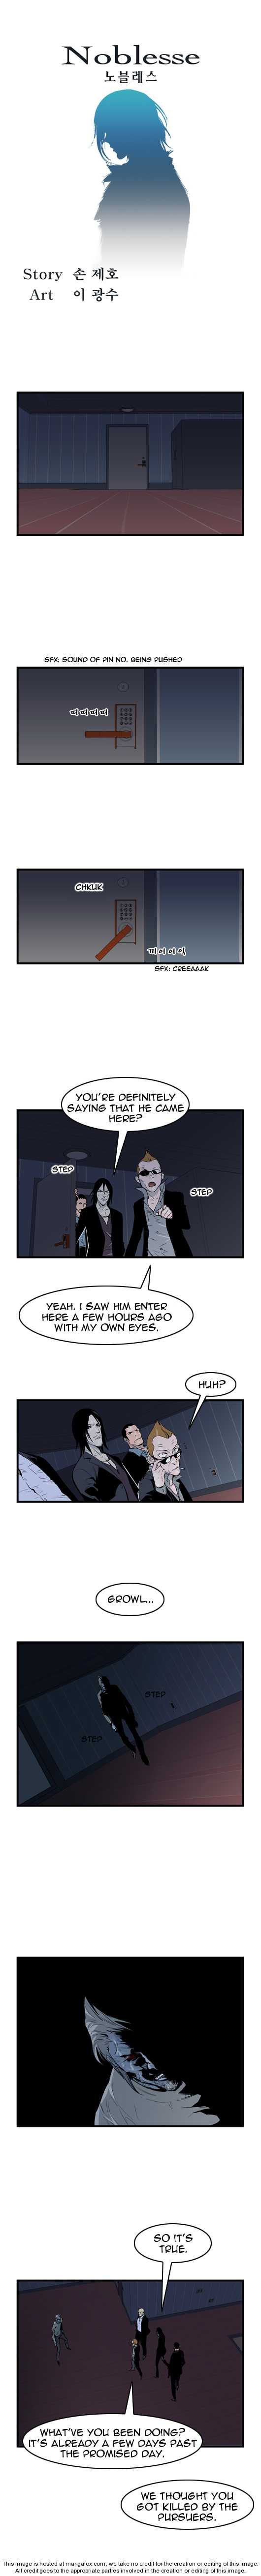 Noblesse 58 Page 1